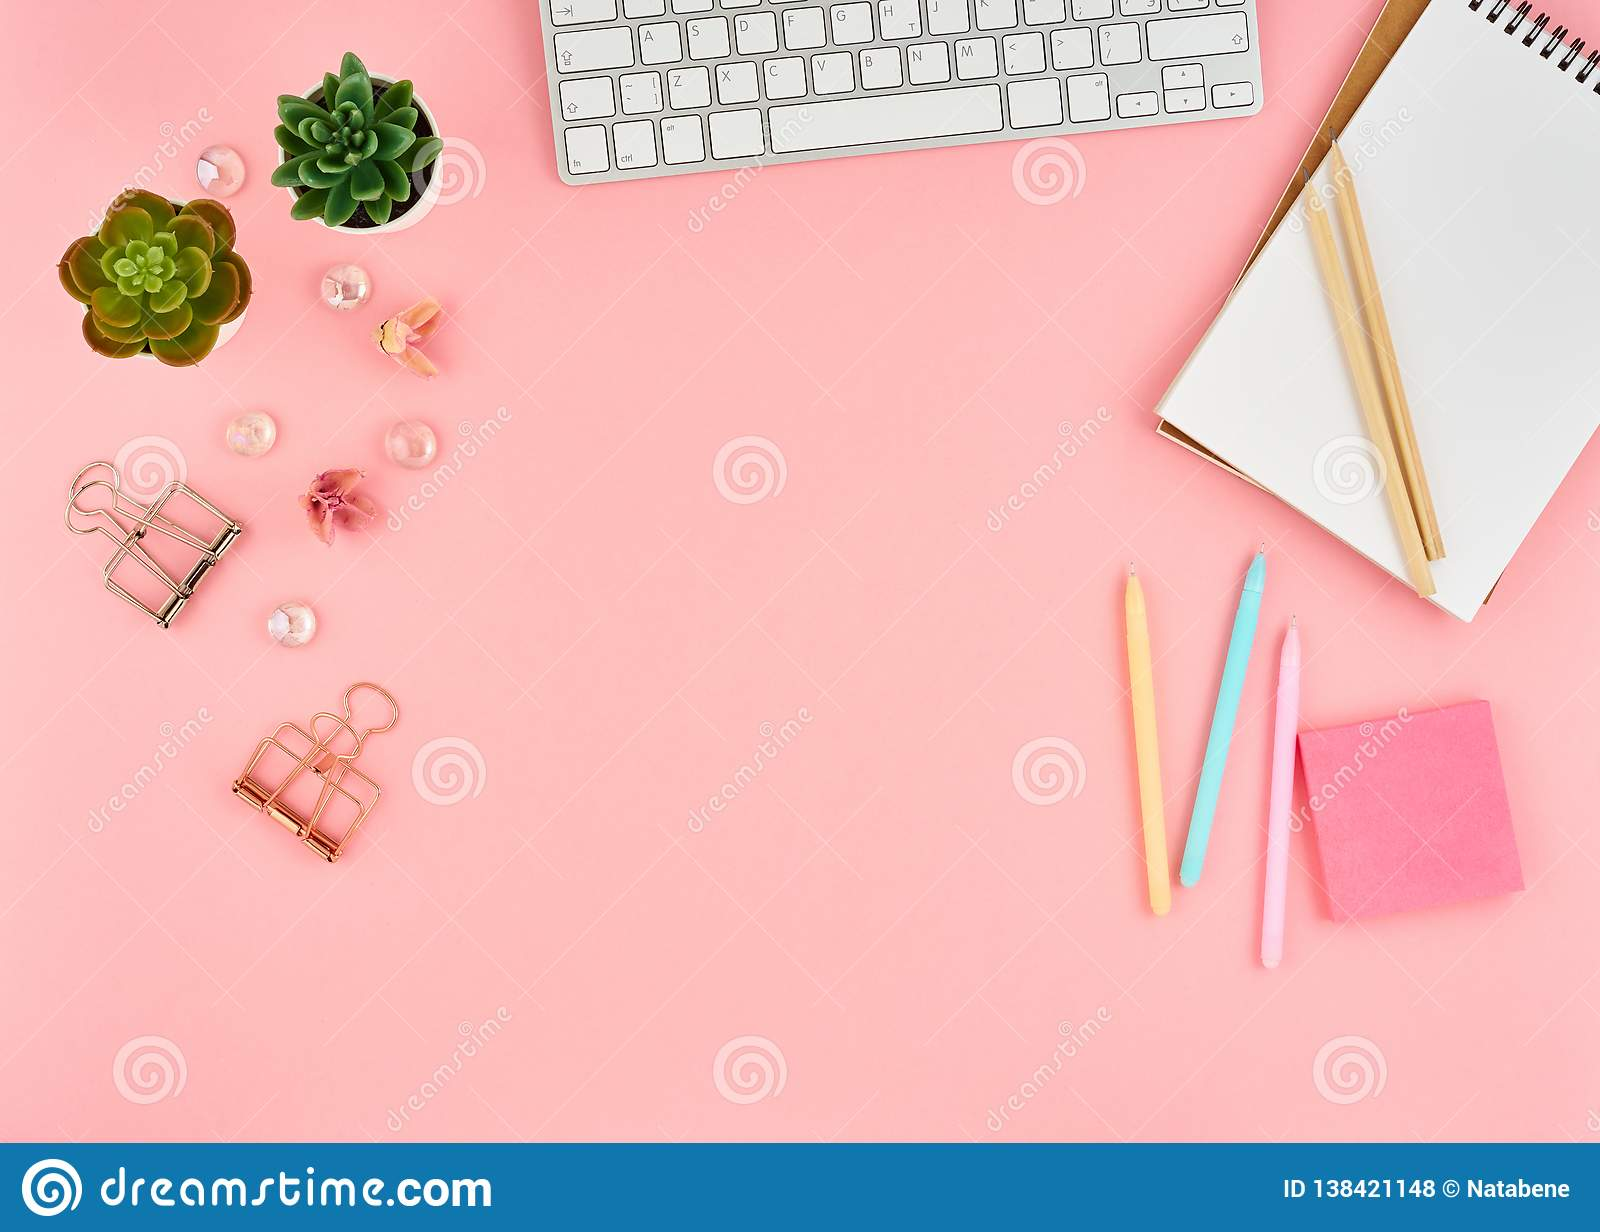 Pink Office Desktop  Top View Of Modern Bright Table With